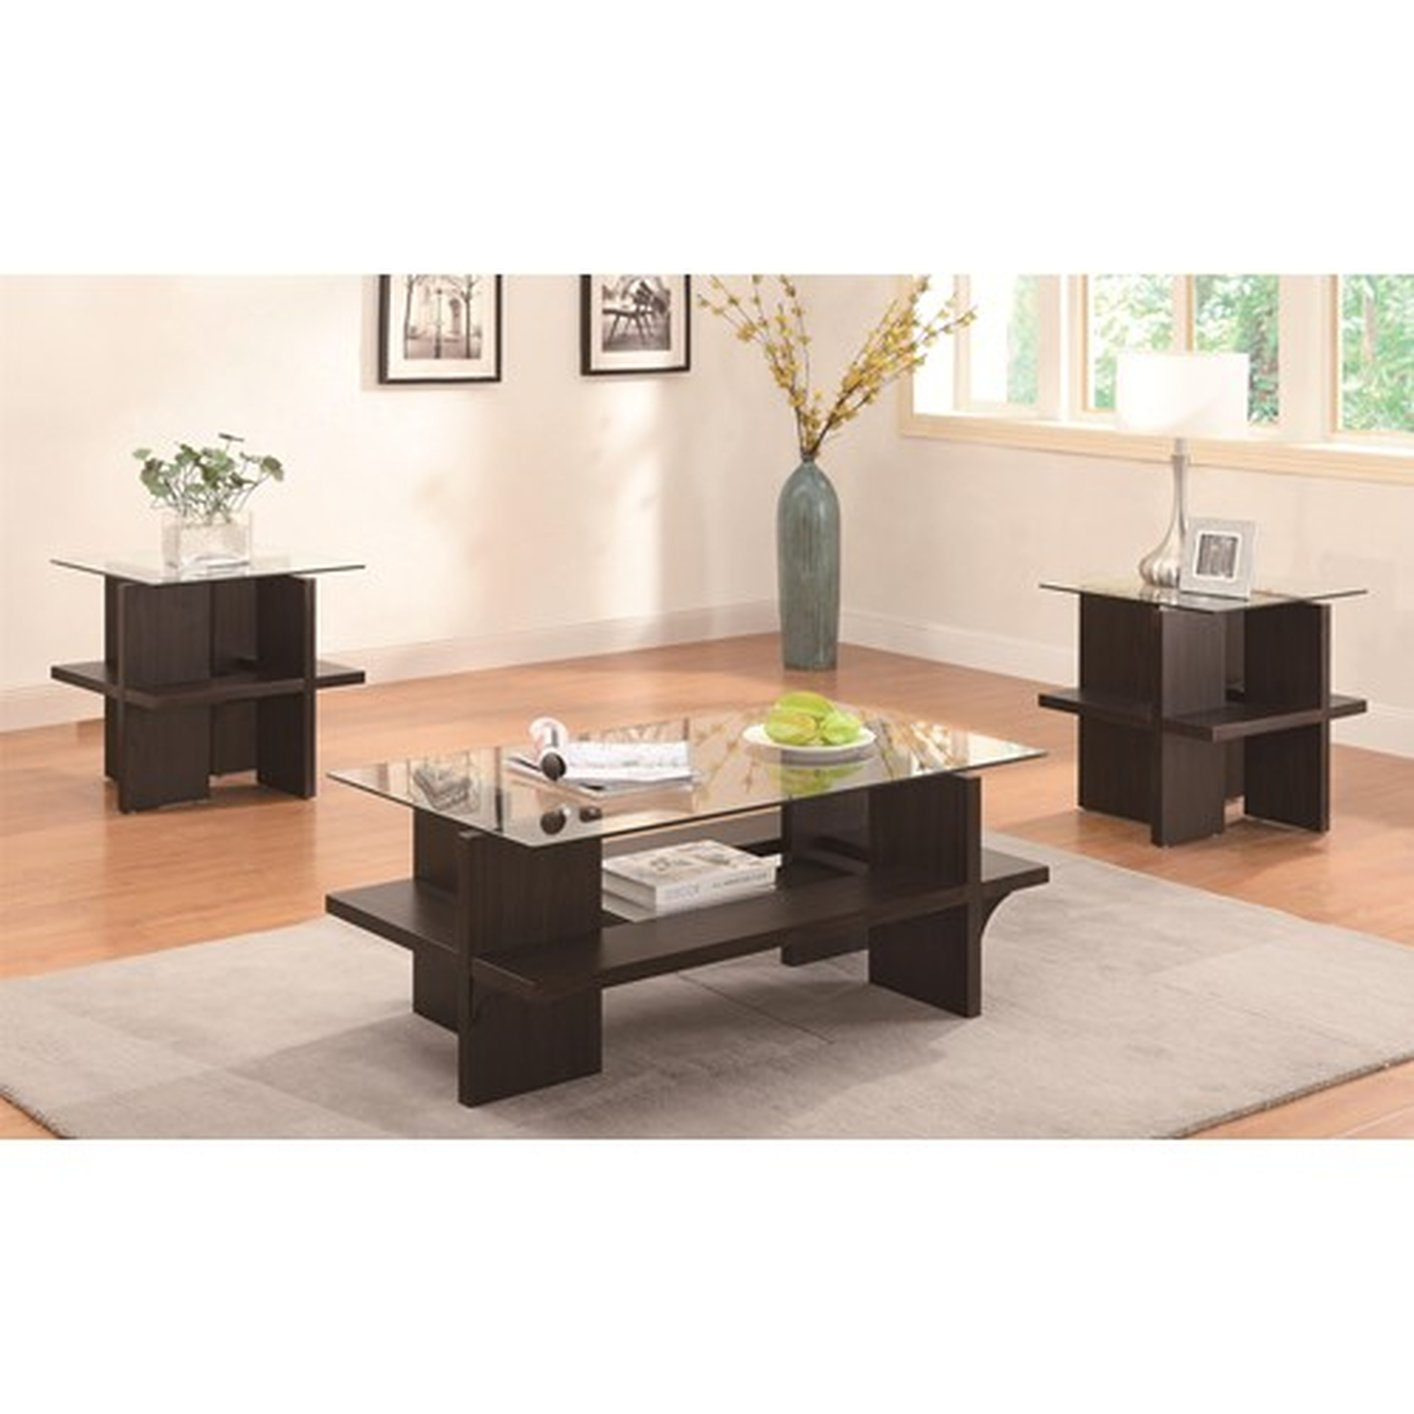 Enright Brown Glass Coffee Table Set - Coaster Enright 700785 Brown Glass Coffee Table Set - Steal-A-Sofa